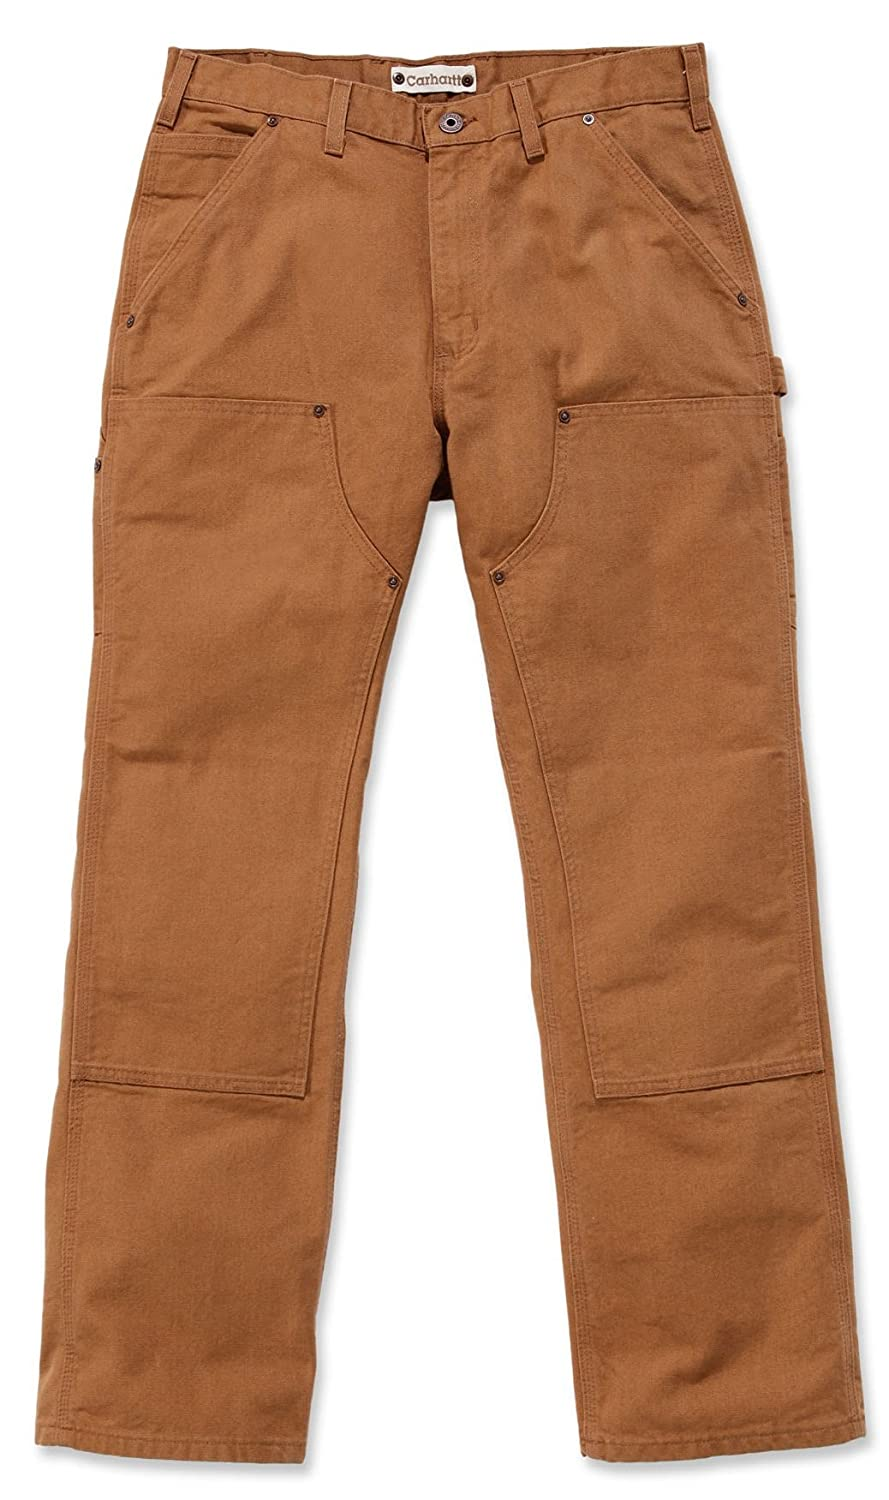 Vert LMA 101017 SCIE Pantalon Multipoches Taille 48